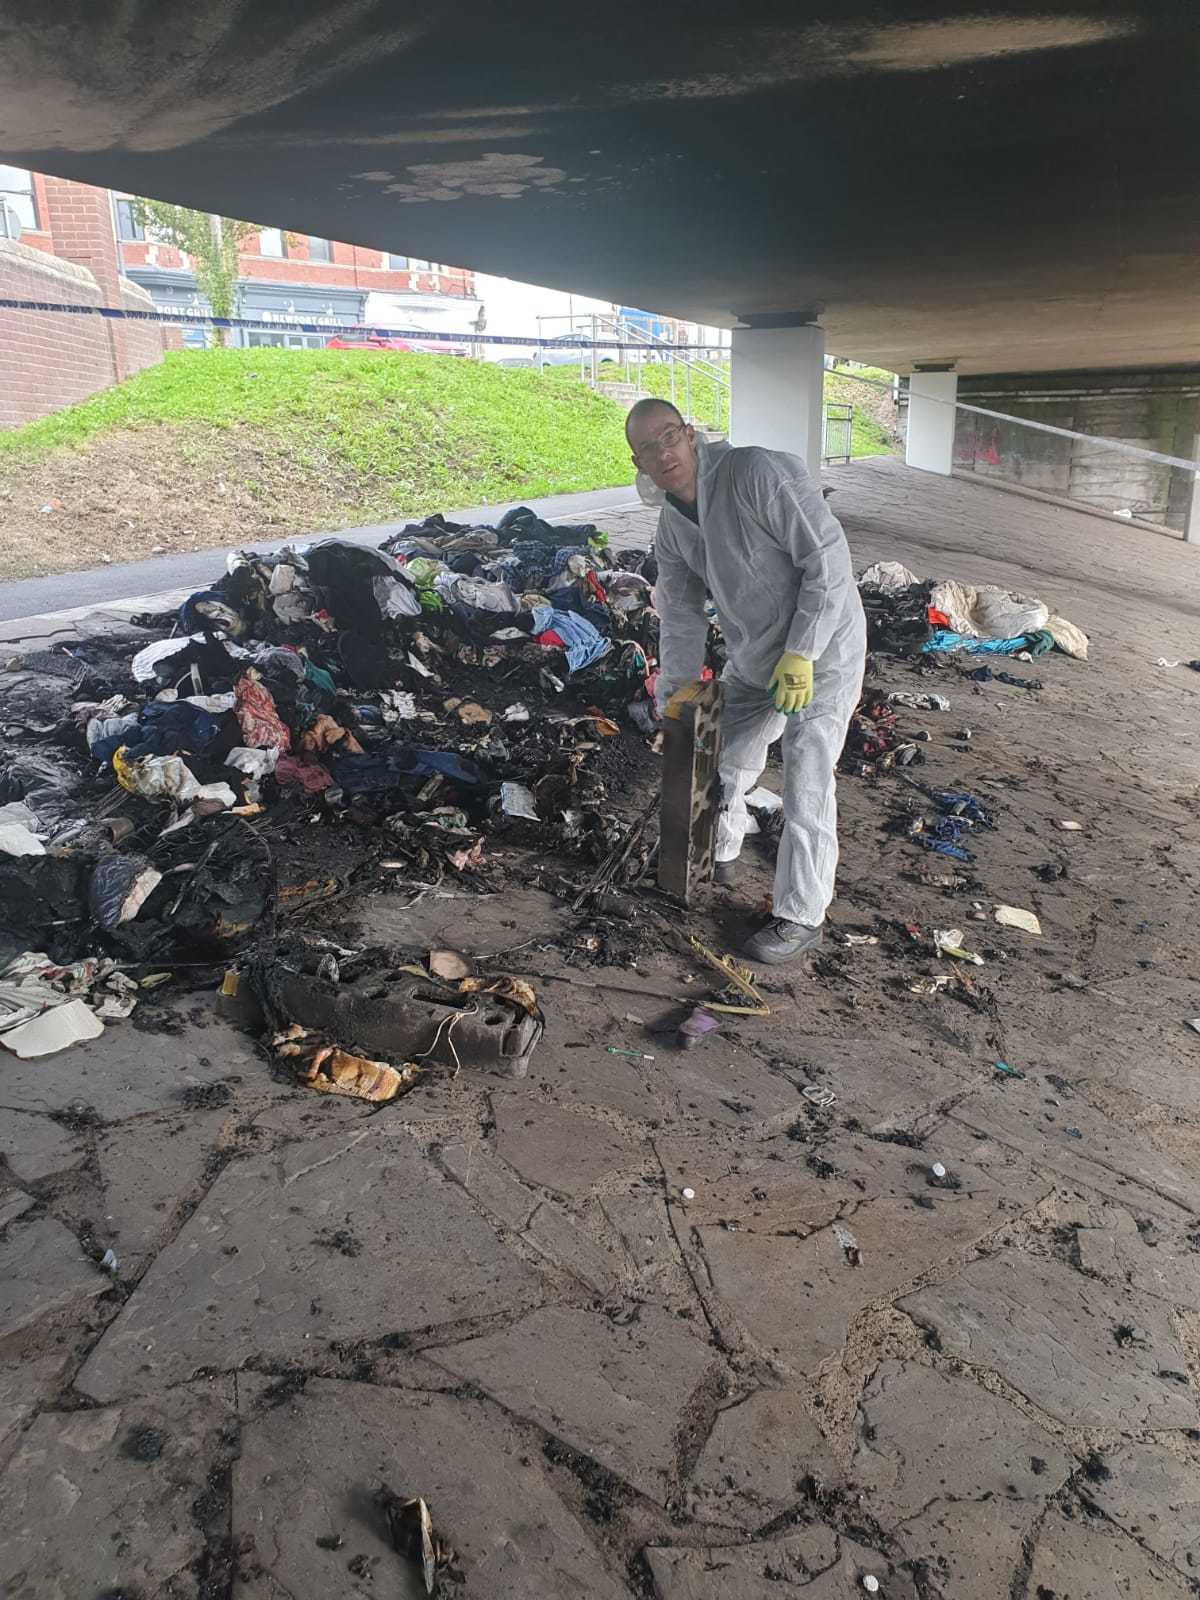 Pride in Pill clean-up after Newport arson attack on homeless